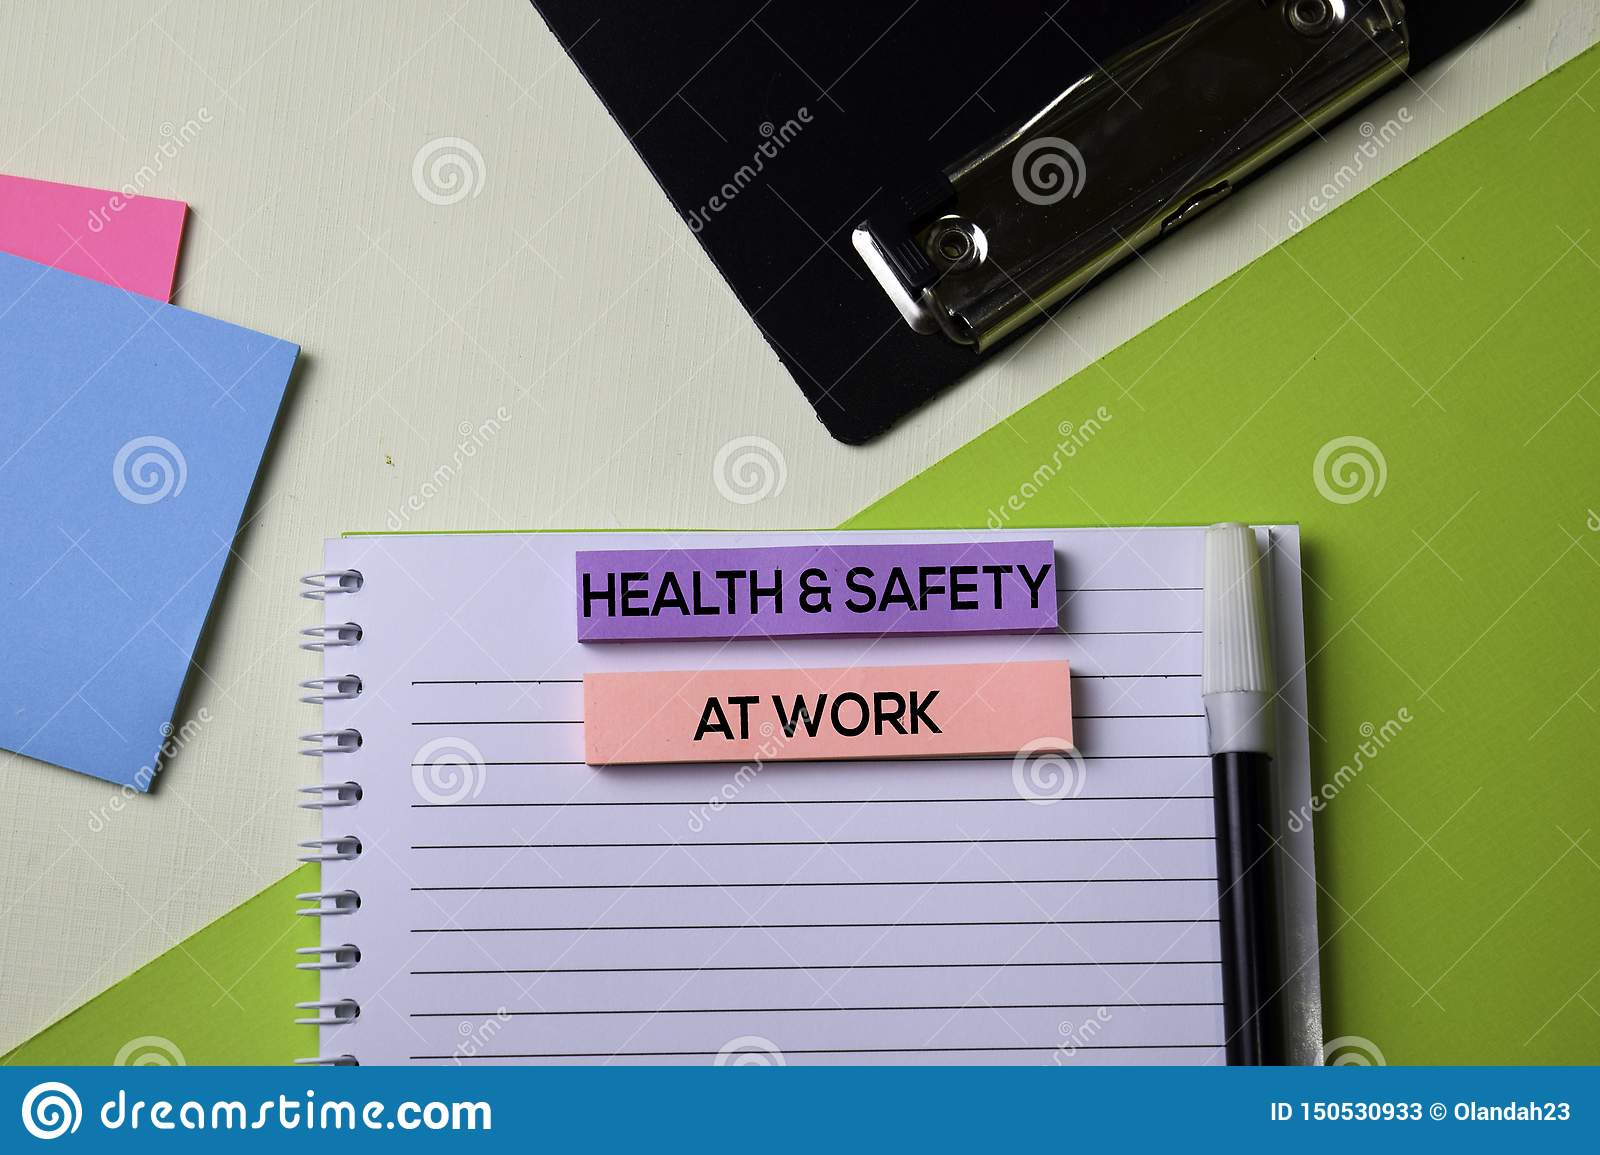 Health & Safety at Work text on top view office desk table of Business workplace and business objects